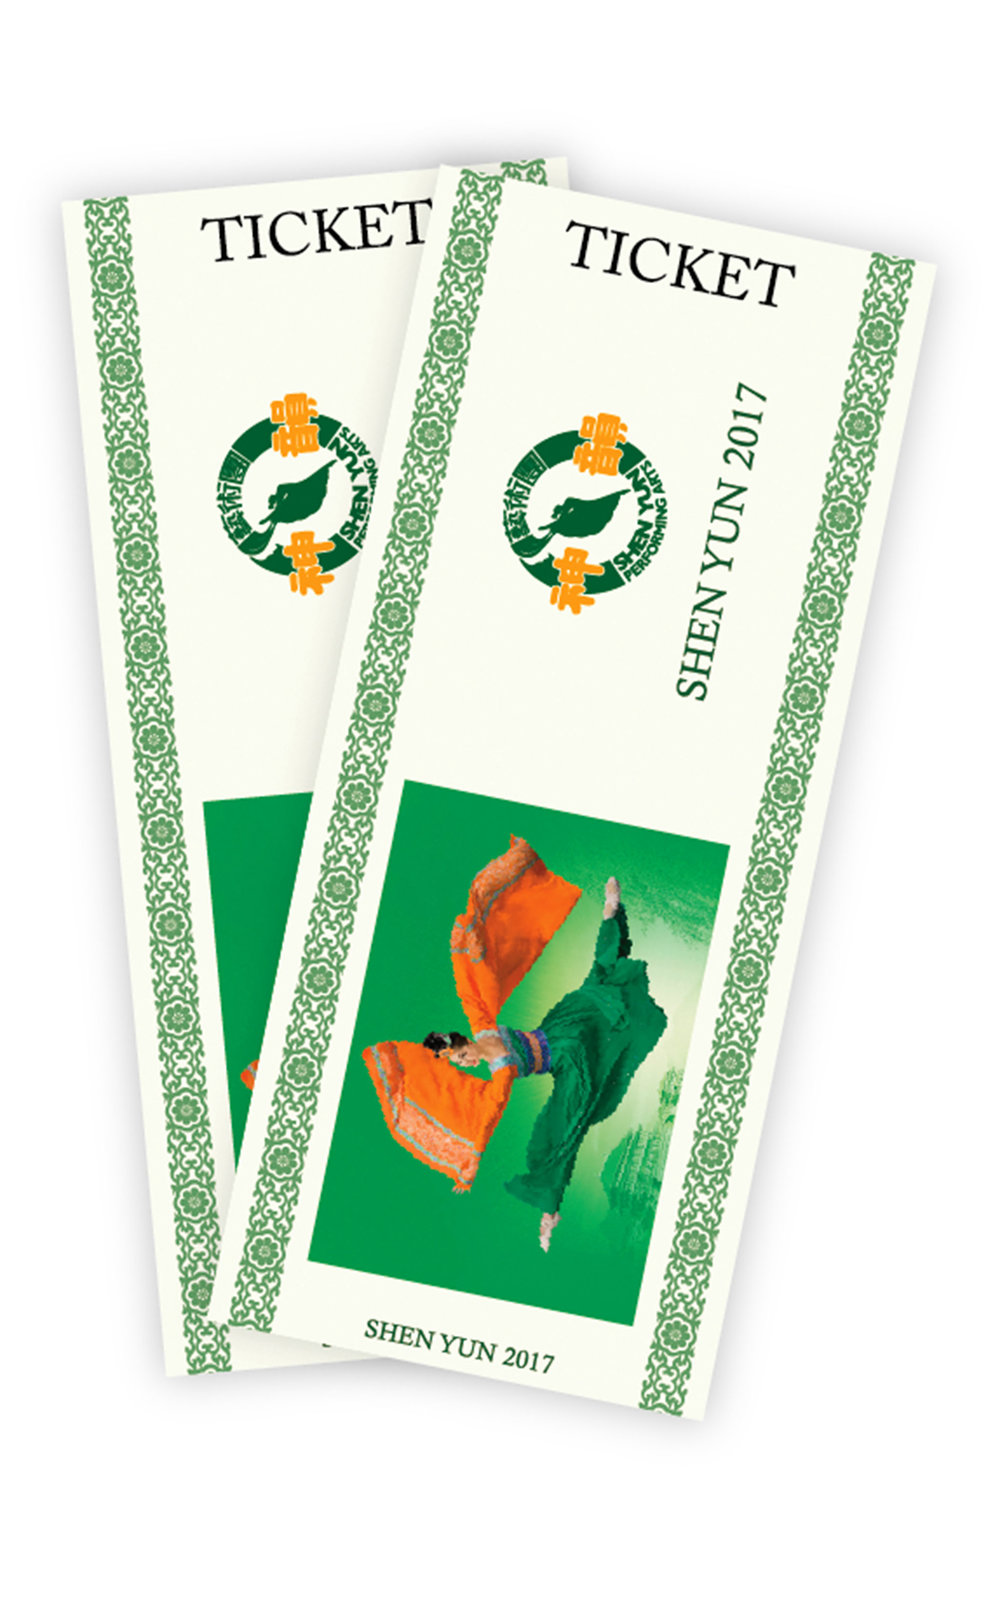 Tickets by Shen Yun Performing Arts‭ ‬$179,  shenyunperformingarts.org